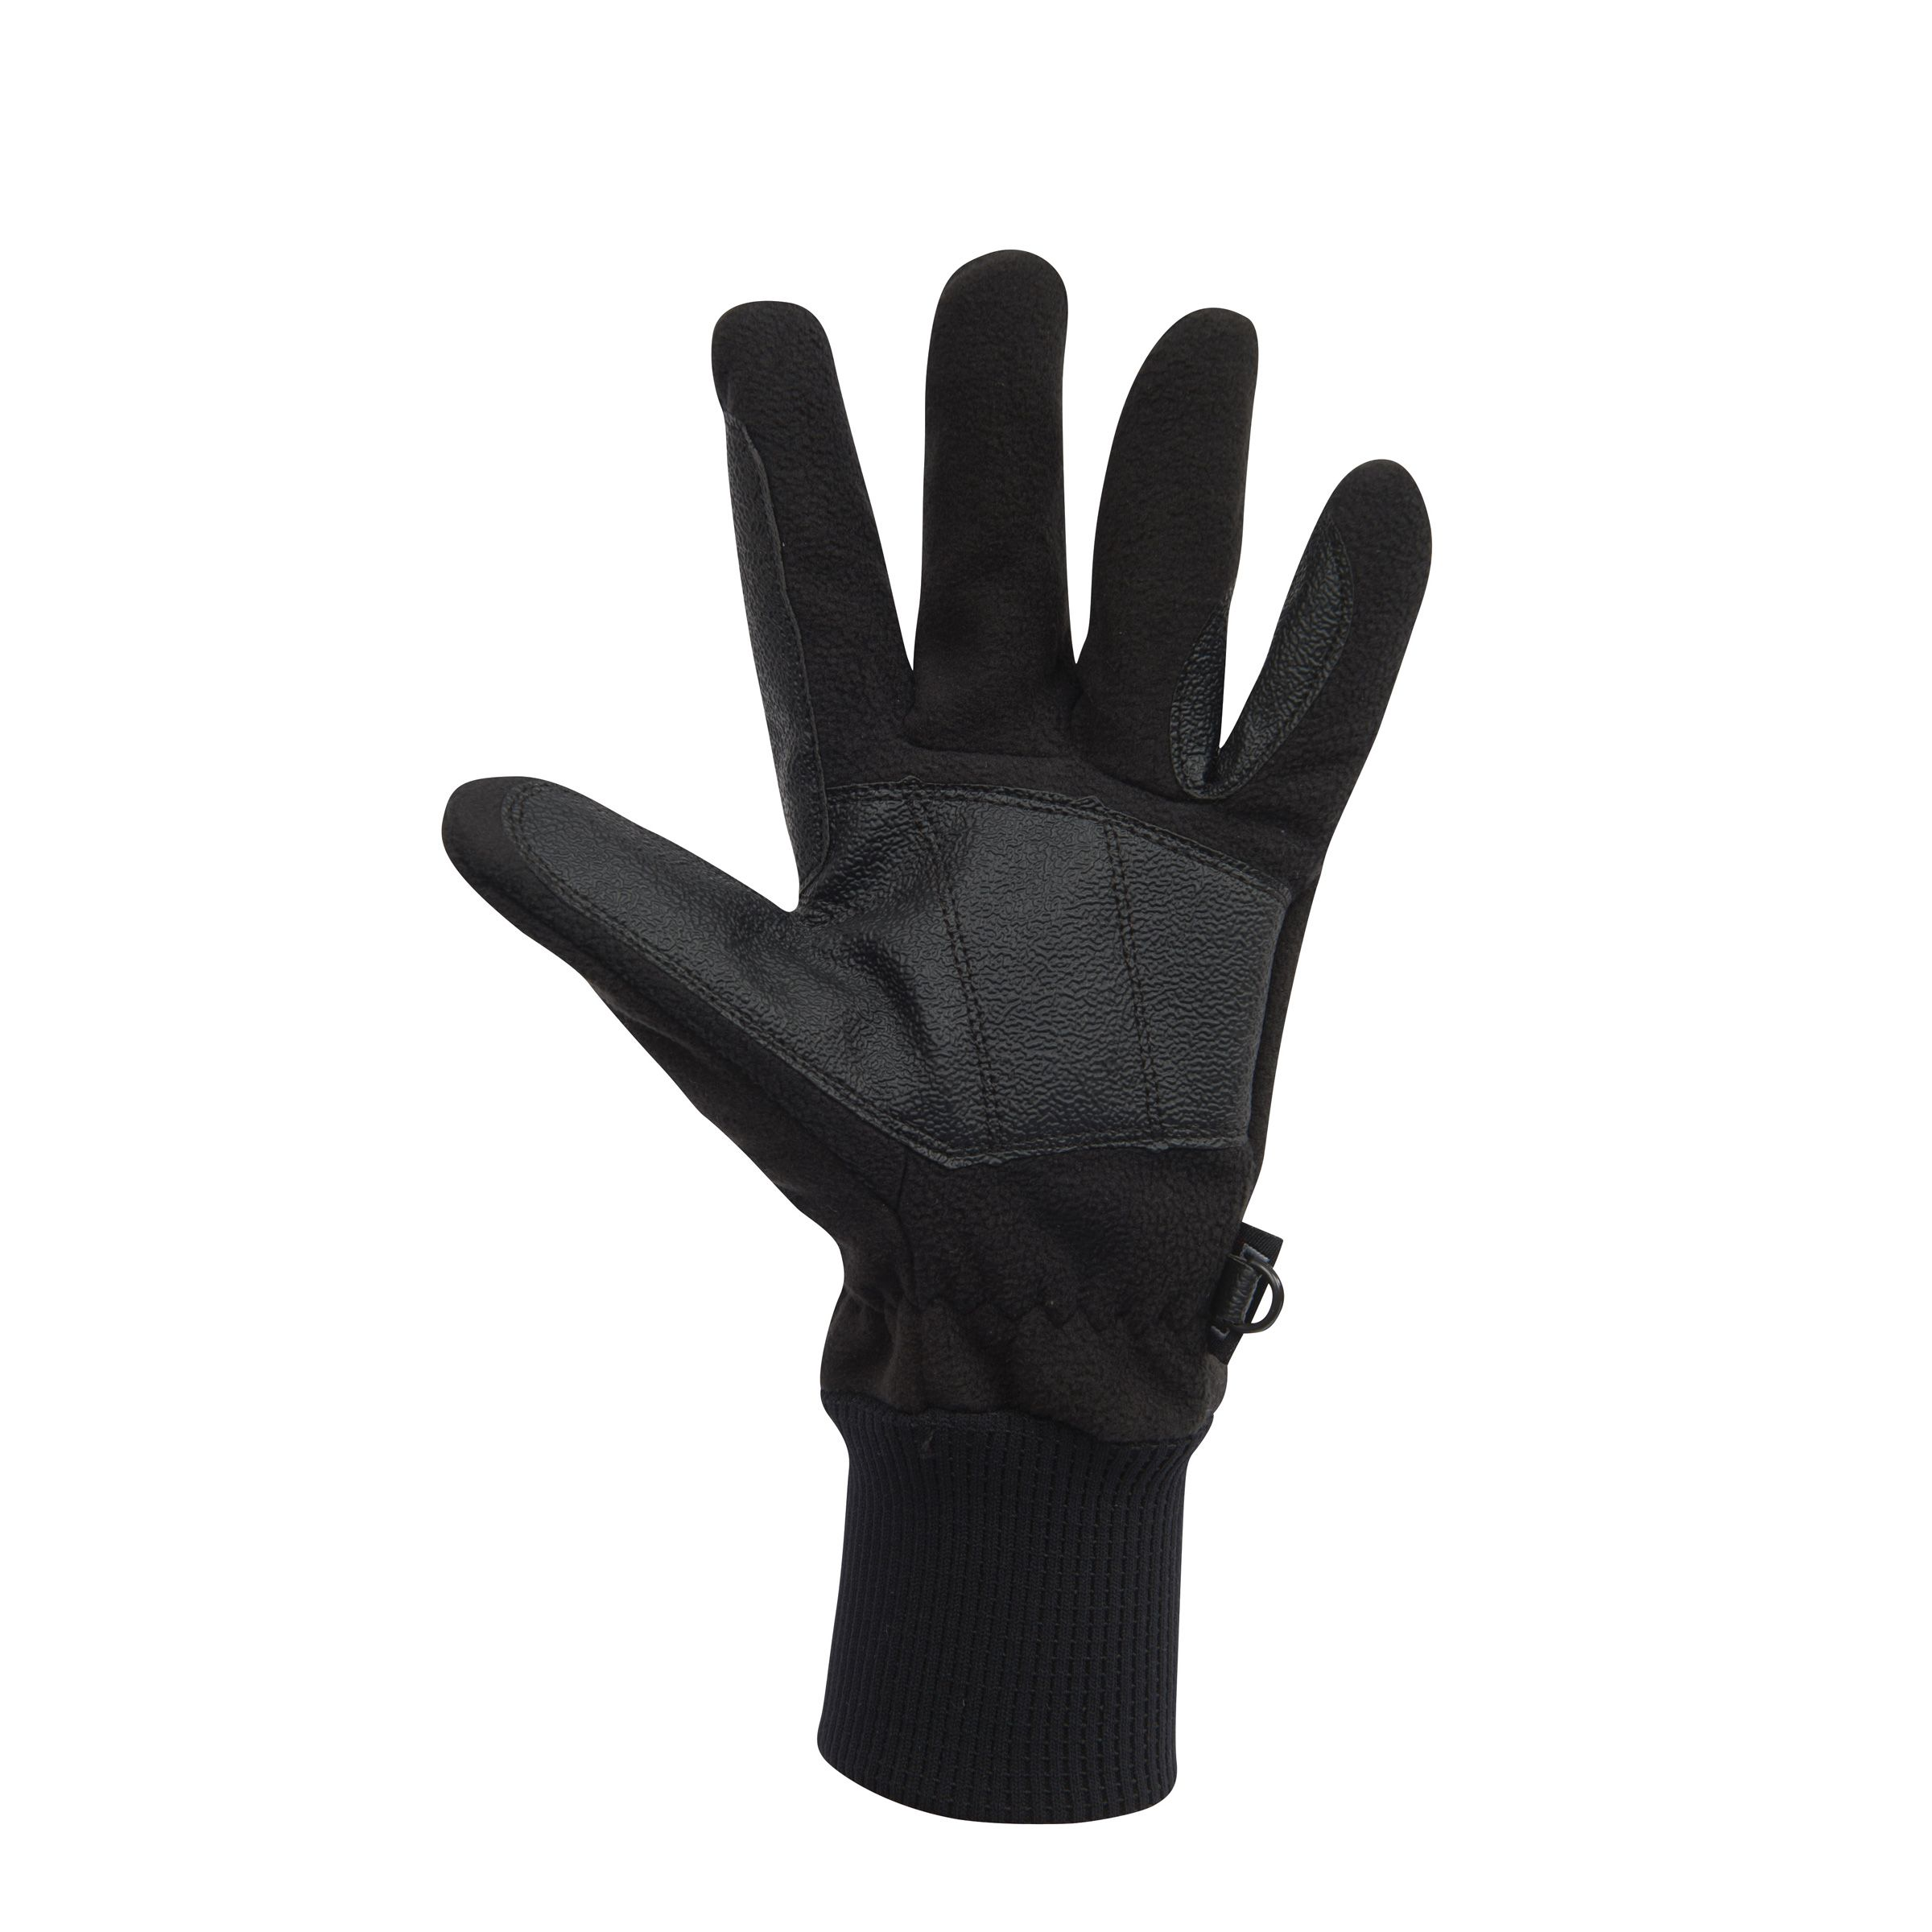 Dublin Everyday Showerproof Polar Fleece Riding Gloves